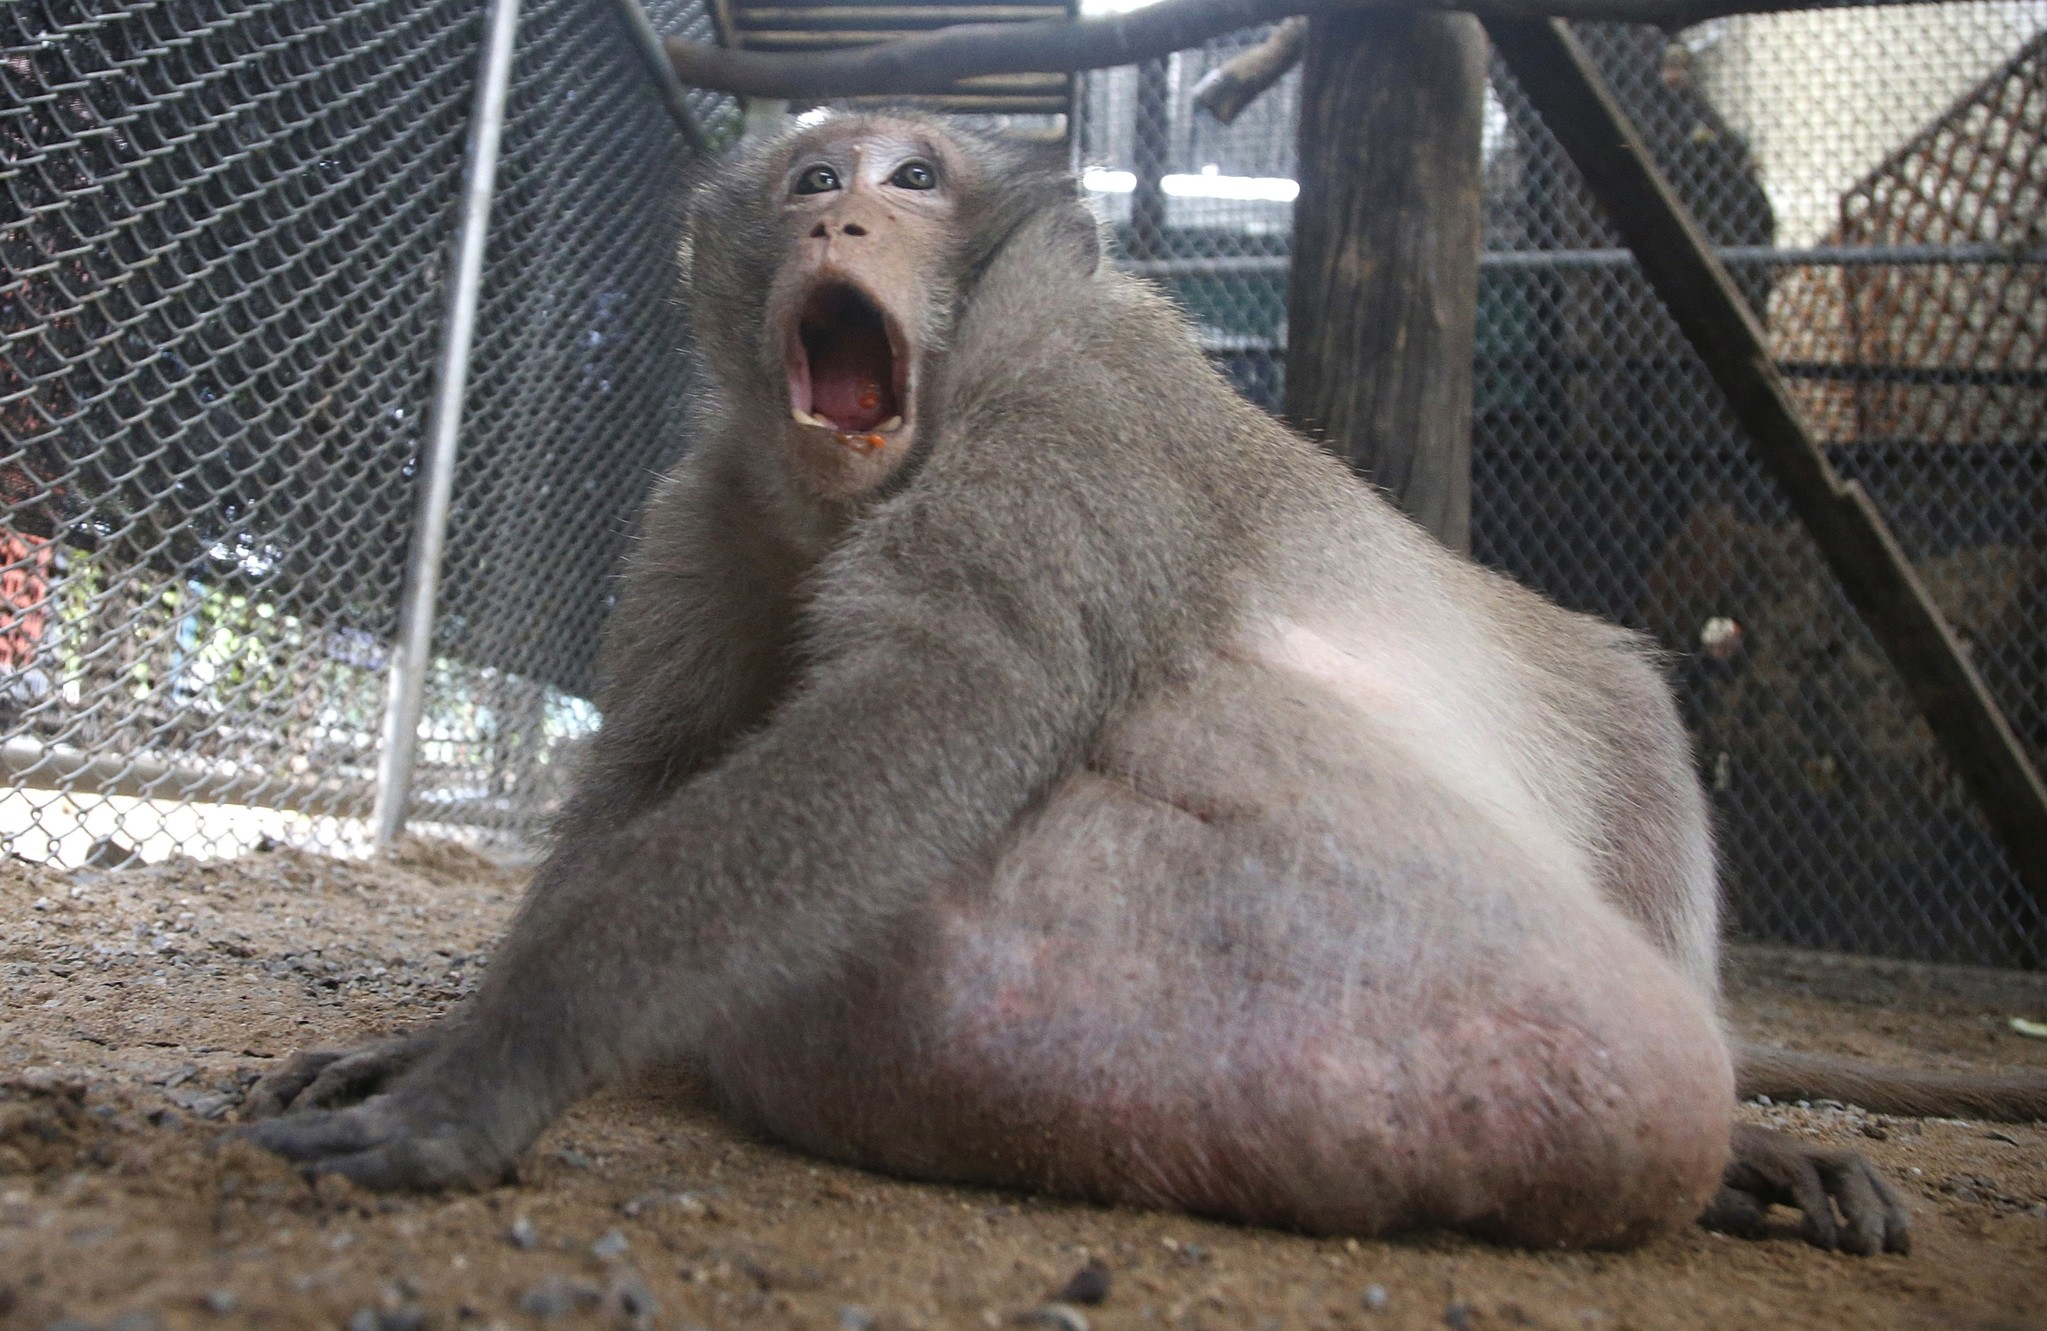 A wild obese macaque named ,Uncle Fat,, who was rescued from a Bangkok suburb, sits in a rehabilitation center in Bangkok, Thailand, Friday, May 19, 2017. (AP Photo)